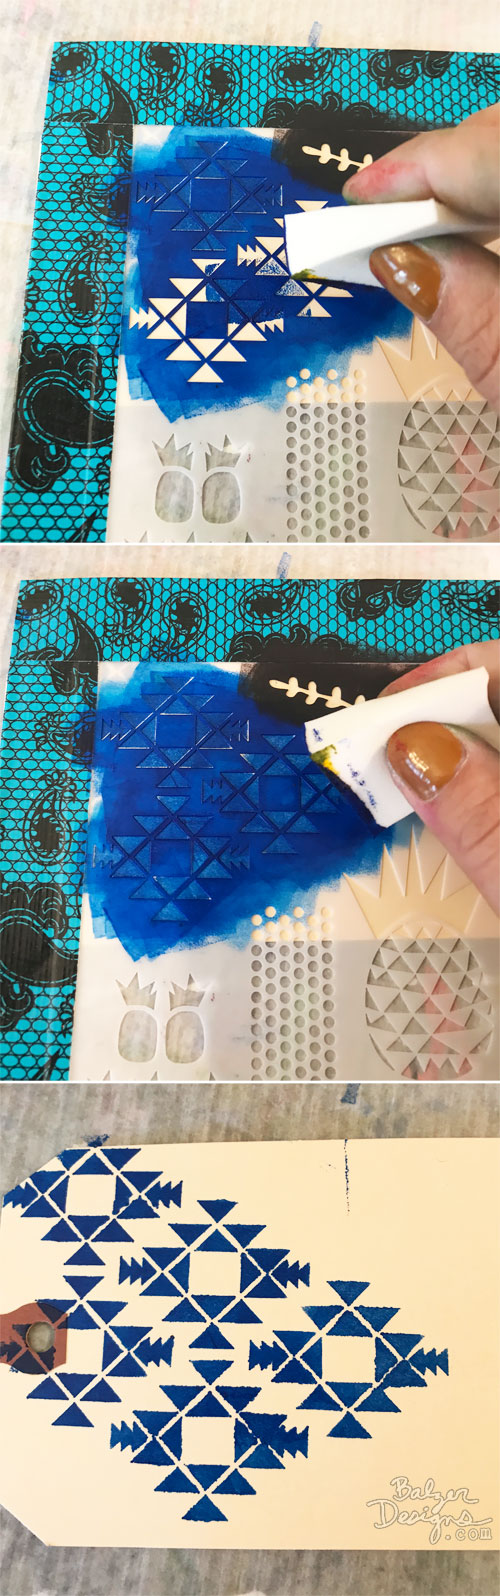 From the Balzer Designs Blog: SUMMER STENCIL TECHNIQUES WITH SUZANNE: Repeat and Layer